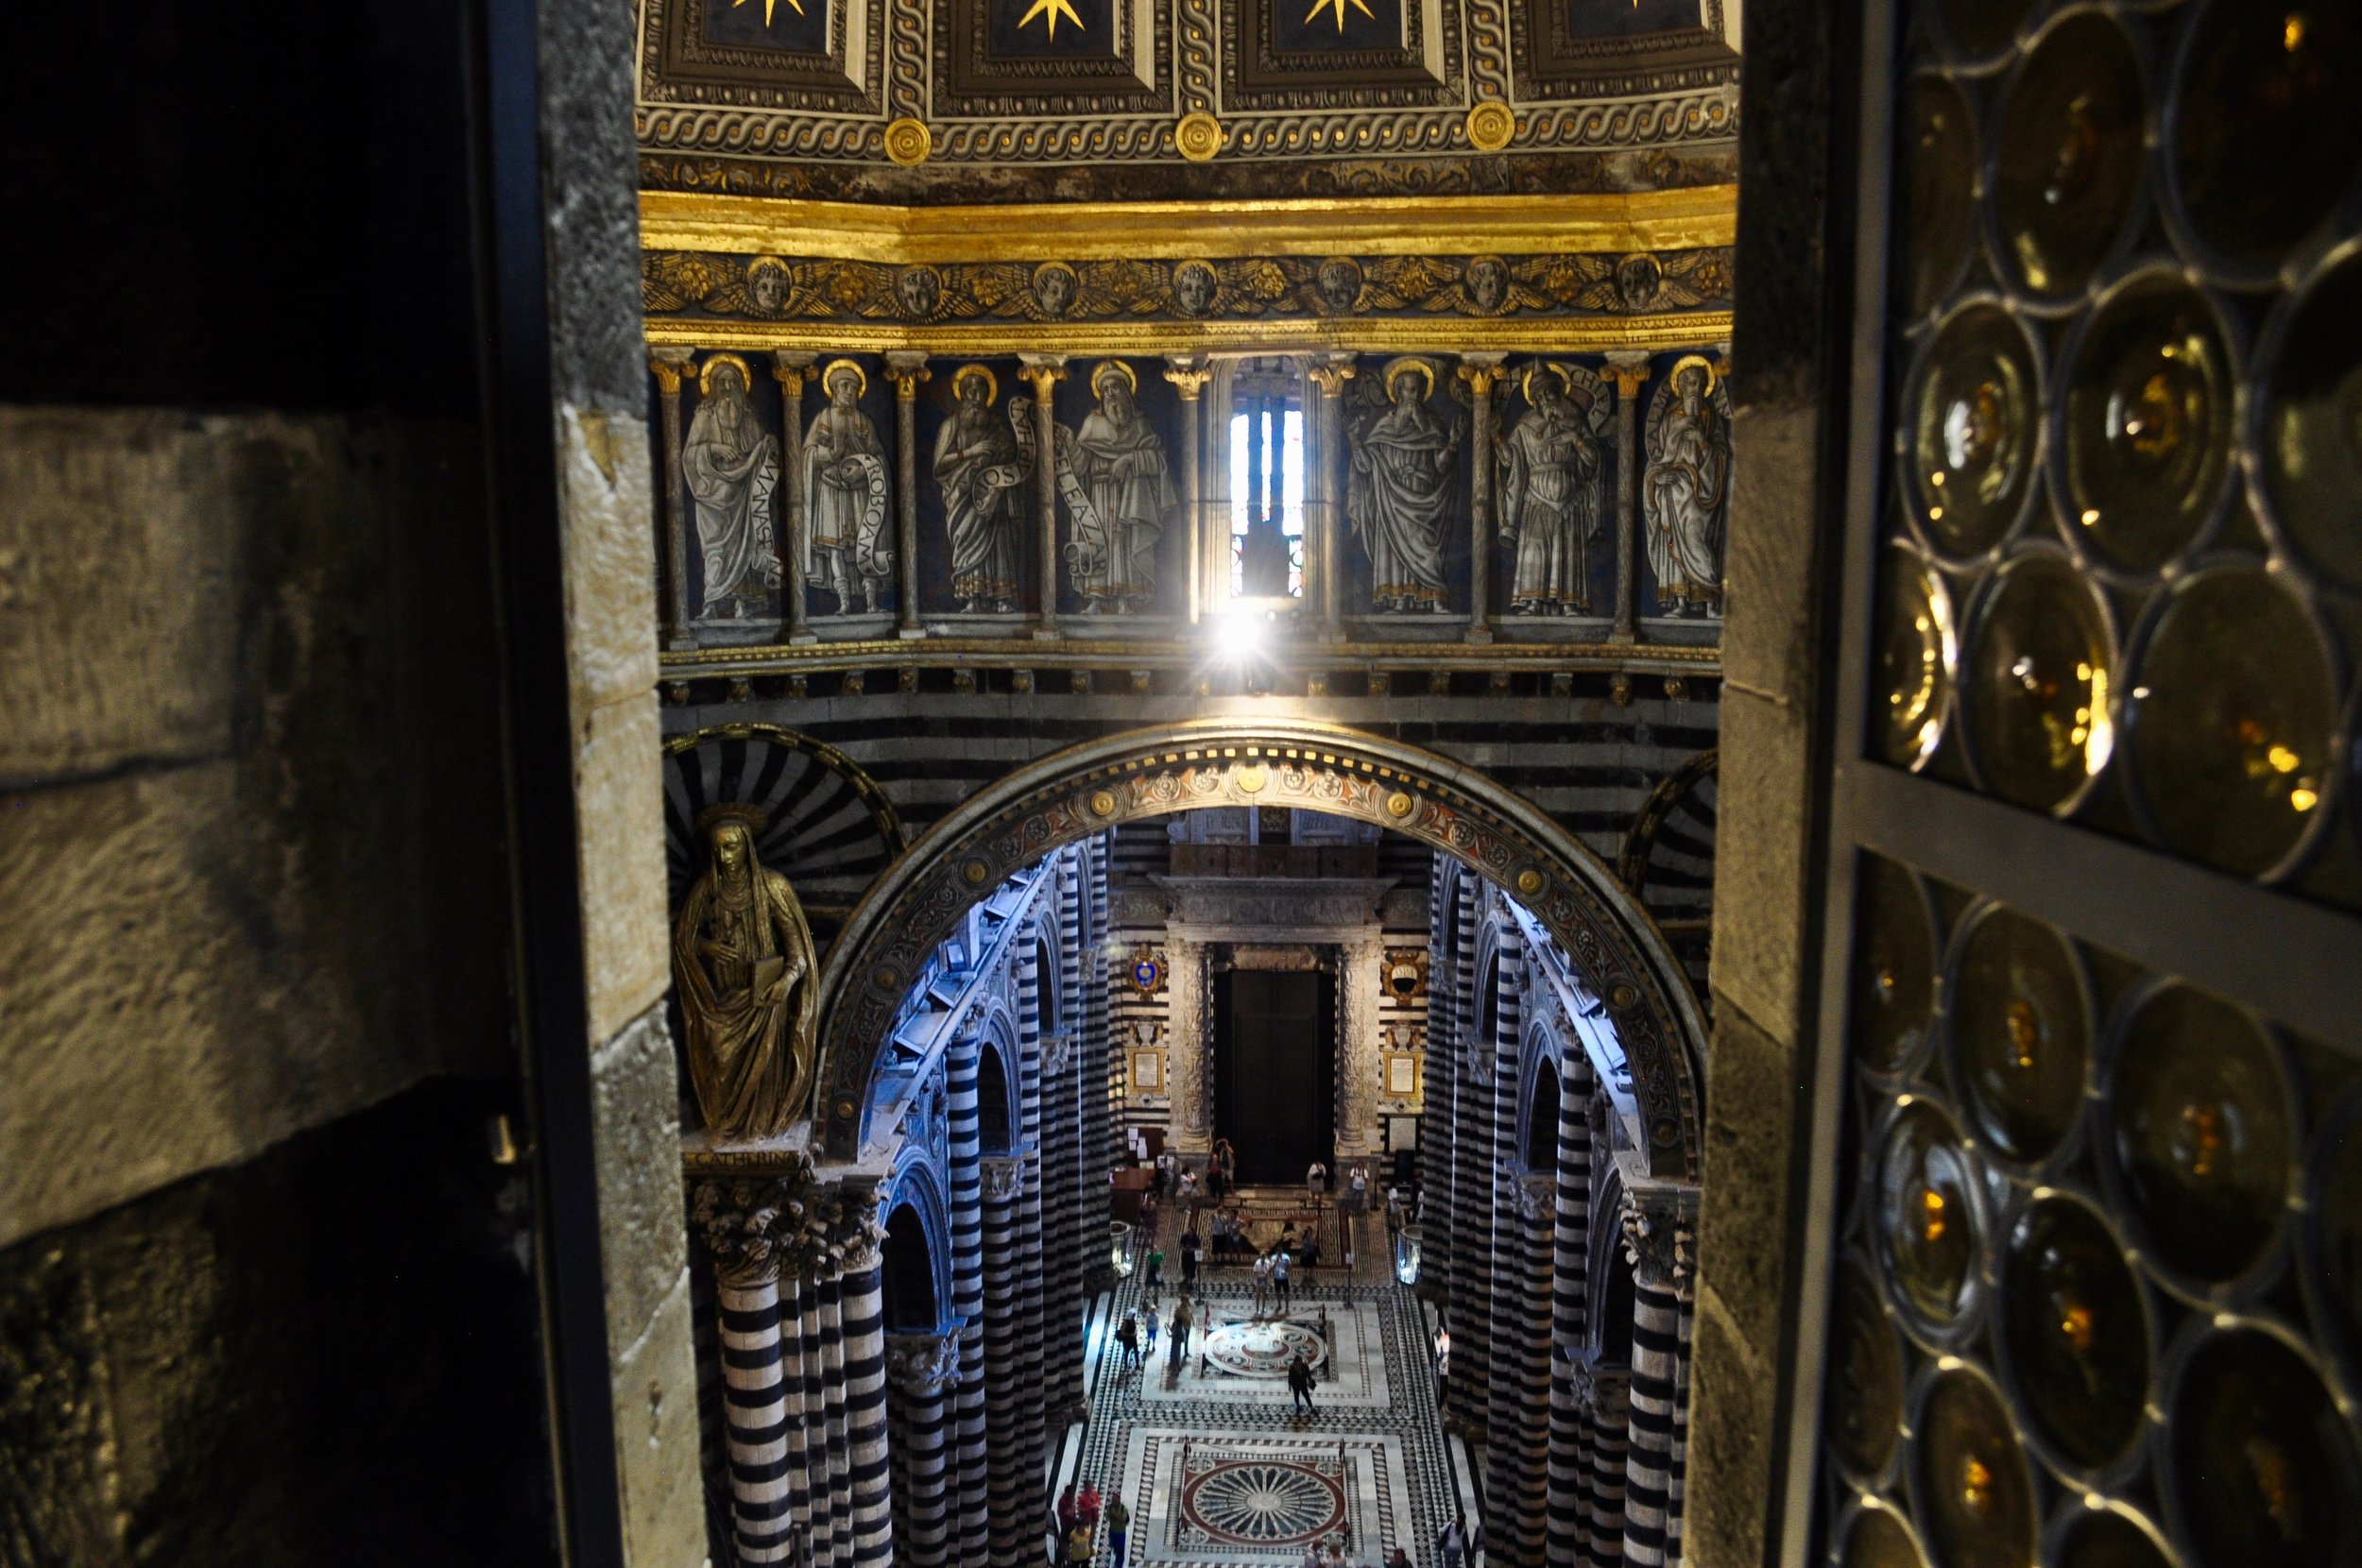 View of Siena Cathedral from Gate of Heaven Tour - Scenic Day Trip to Siena from Florence, Italy - A Happy Passport